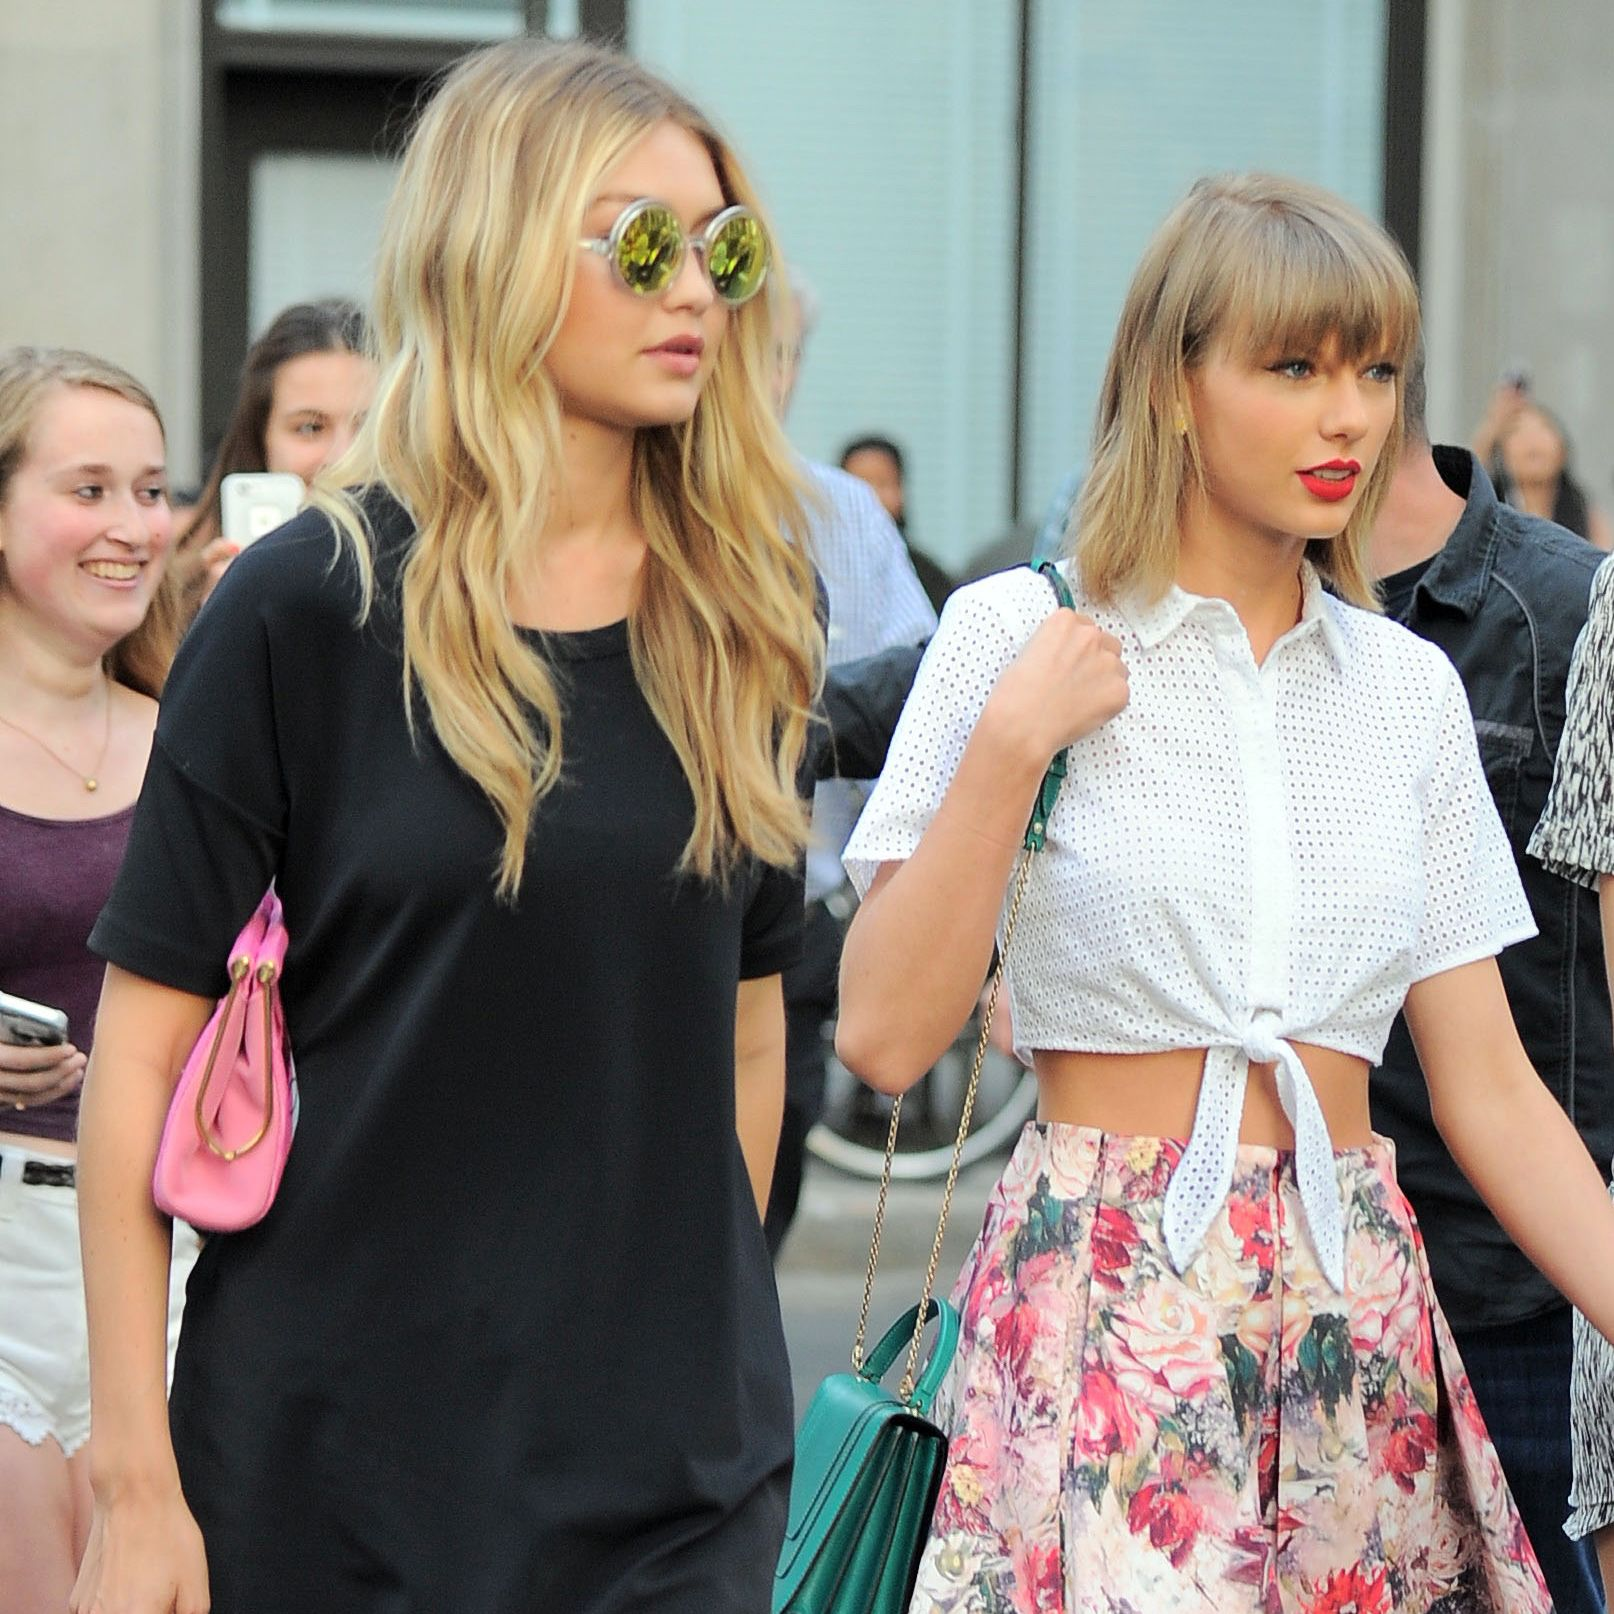 """<p>Hadid, a card-carrying member of T-Swift's #squad, <a href=""""http://people.com/celebrity/taylor-swift-hangs-out-with-her-ex-joe-jonas-and-her-bestie-gigi-hadid/"""" target=""""_blank"""" data-tracking-id=""""recirc-text-link"""">dated singer Joe Jonas in 2015</a> – seven years after <a href=""""http://www.usmagazine.com/celebrity-news/pictures/can-you-believe-they-dated-20091812/5867"""" target=""""_blank"""" data-tracking-id=""""recirc-text-link"""">the pop star dated Jonas herself</a> and was dumped by him in an <a href=""""http://people.com/celebrity/joe-jonas-explains-split-from-taylor-swift/"""" target=""""_blank"""" data-tracking-id=""""recirc-text-link"""">infamous 27-second phone call</a>. Swift didn't seem to hold a grudge though, and was even seen hanging out with the pair before they called it off.</p>"""